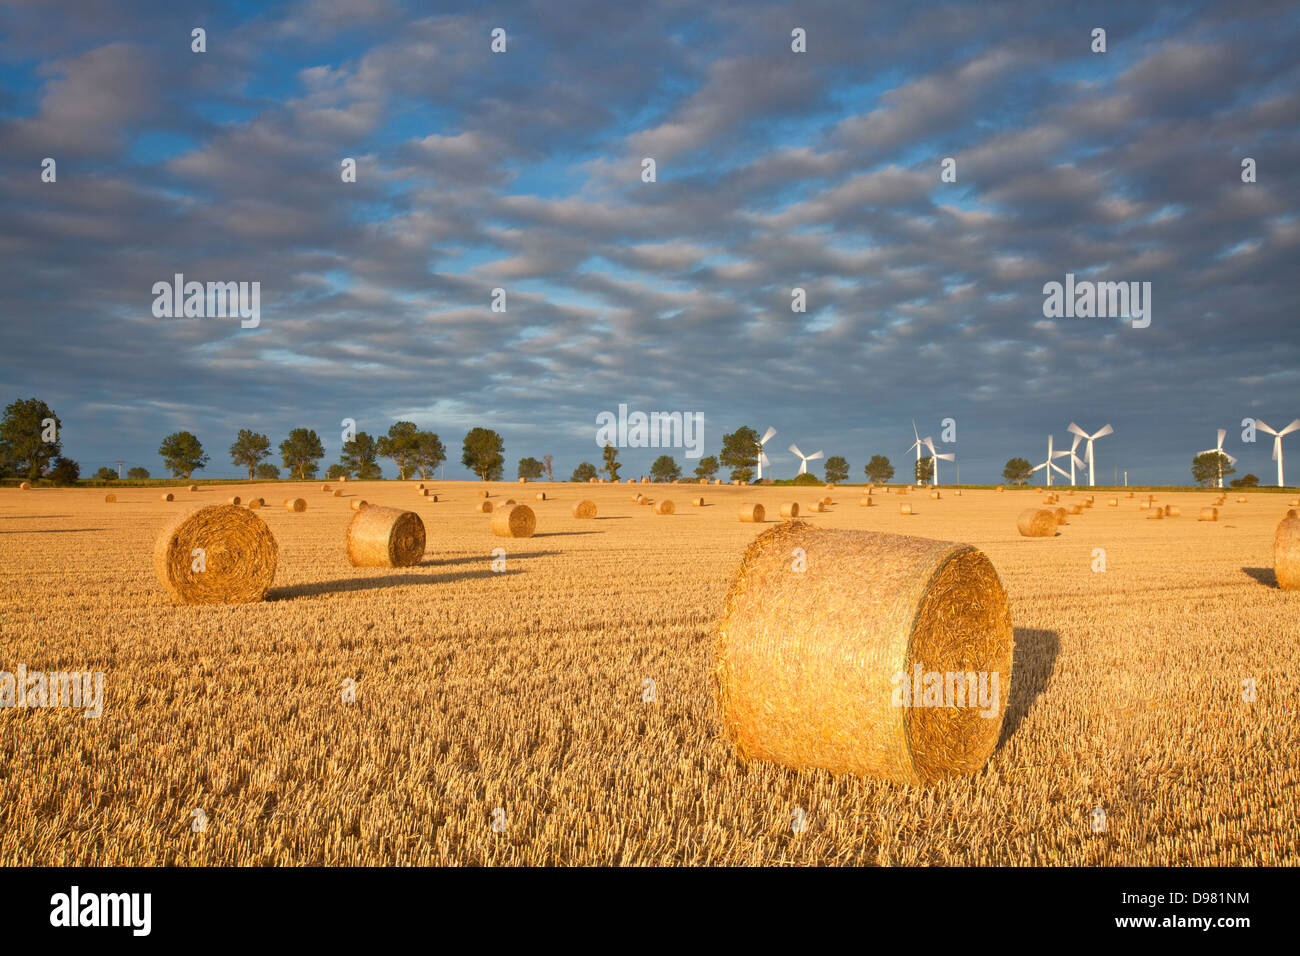 Hay Bales at first light in front of West Somerton windfarm in the distance - Stock Image